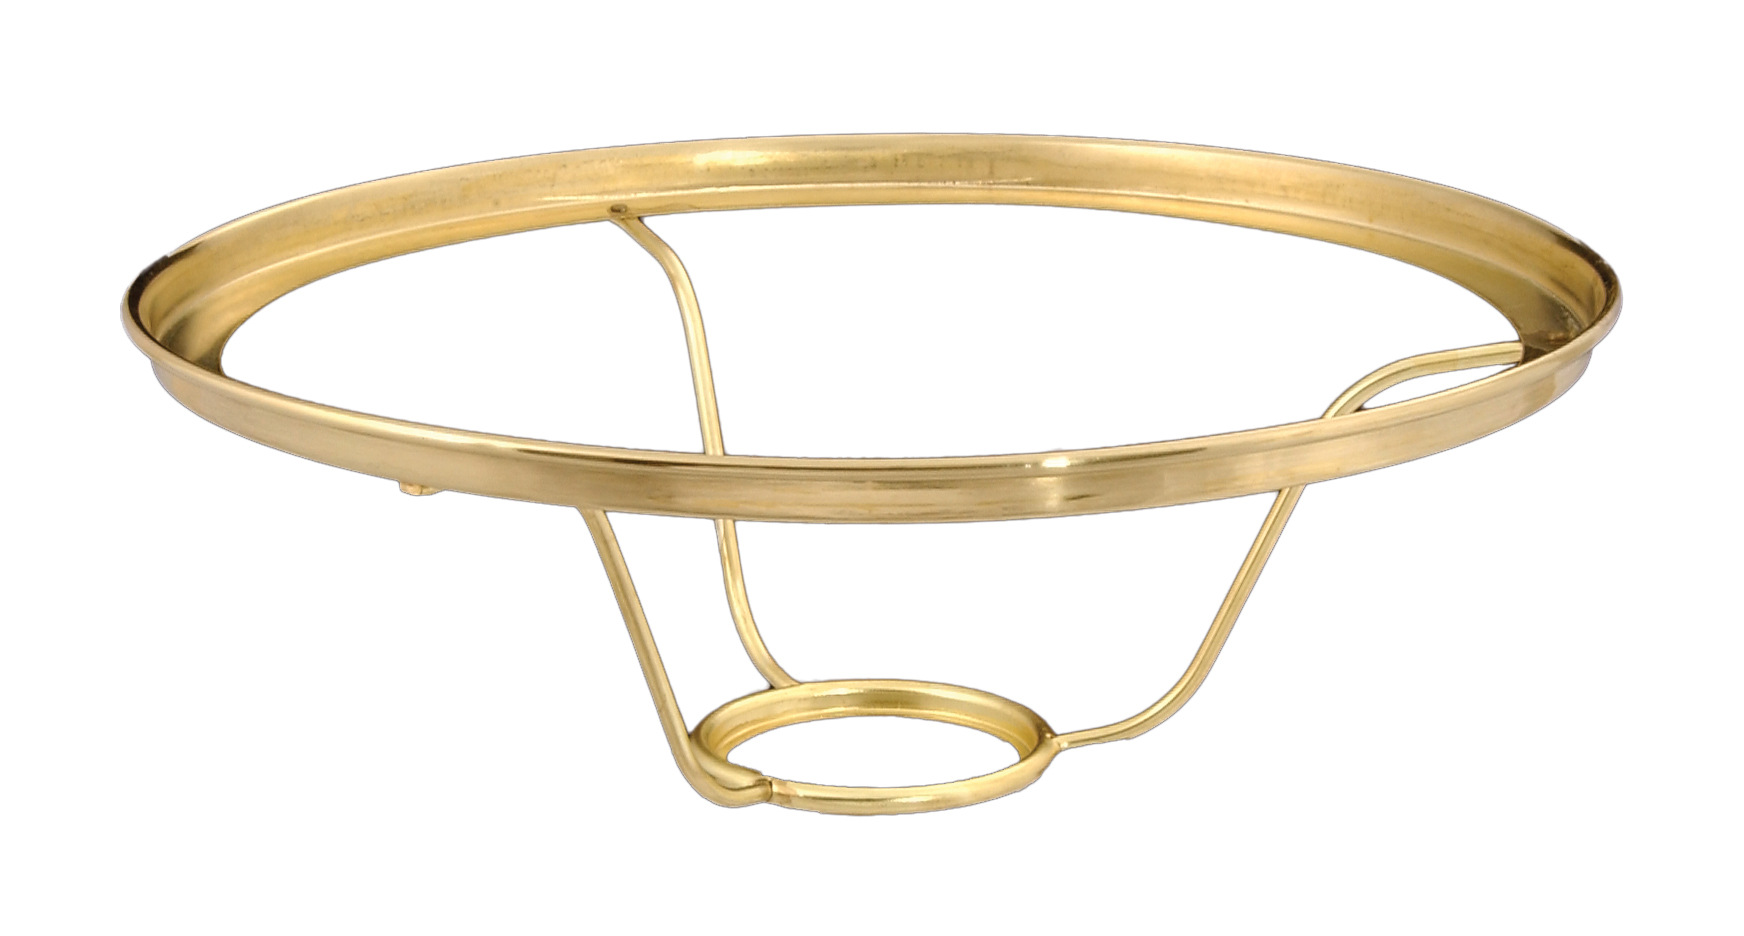 10 Inch Solid Brass Shade Ring Holders Designed To Fit